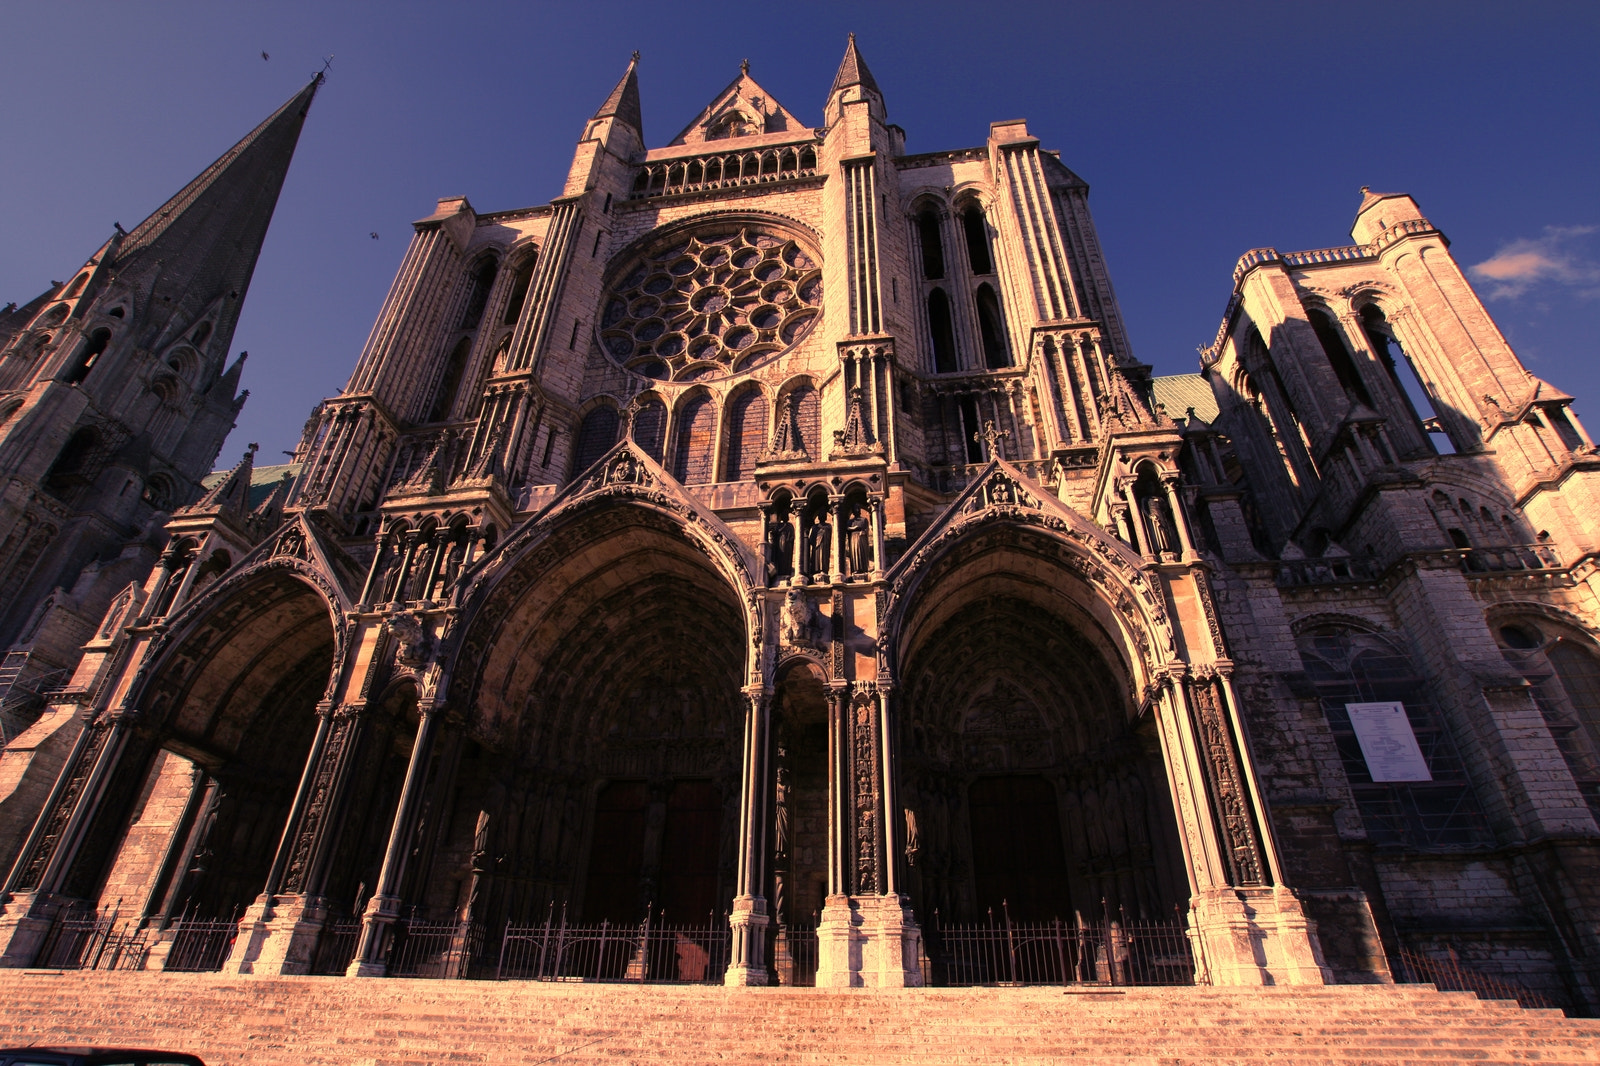 Photograph Chartres cathedral by Andrei Fried on 500px